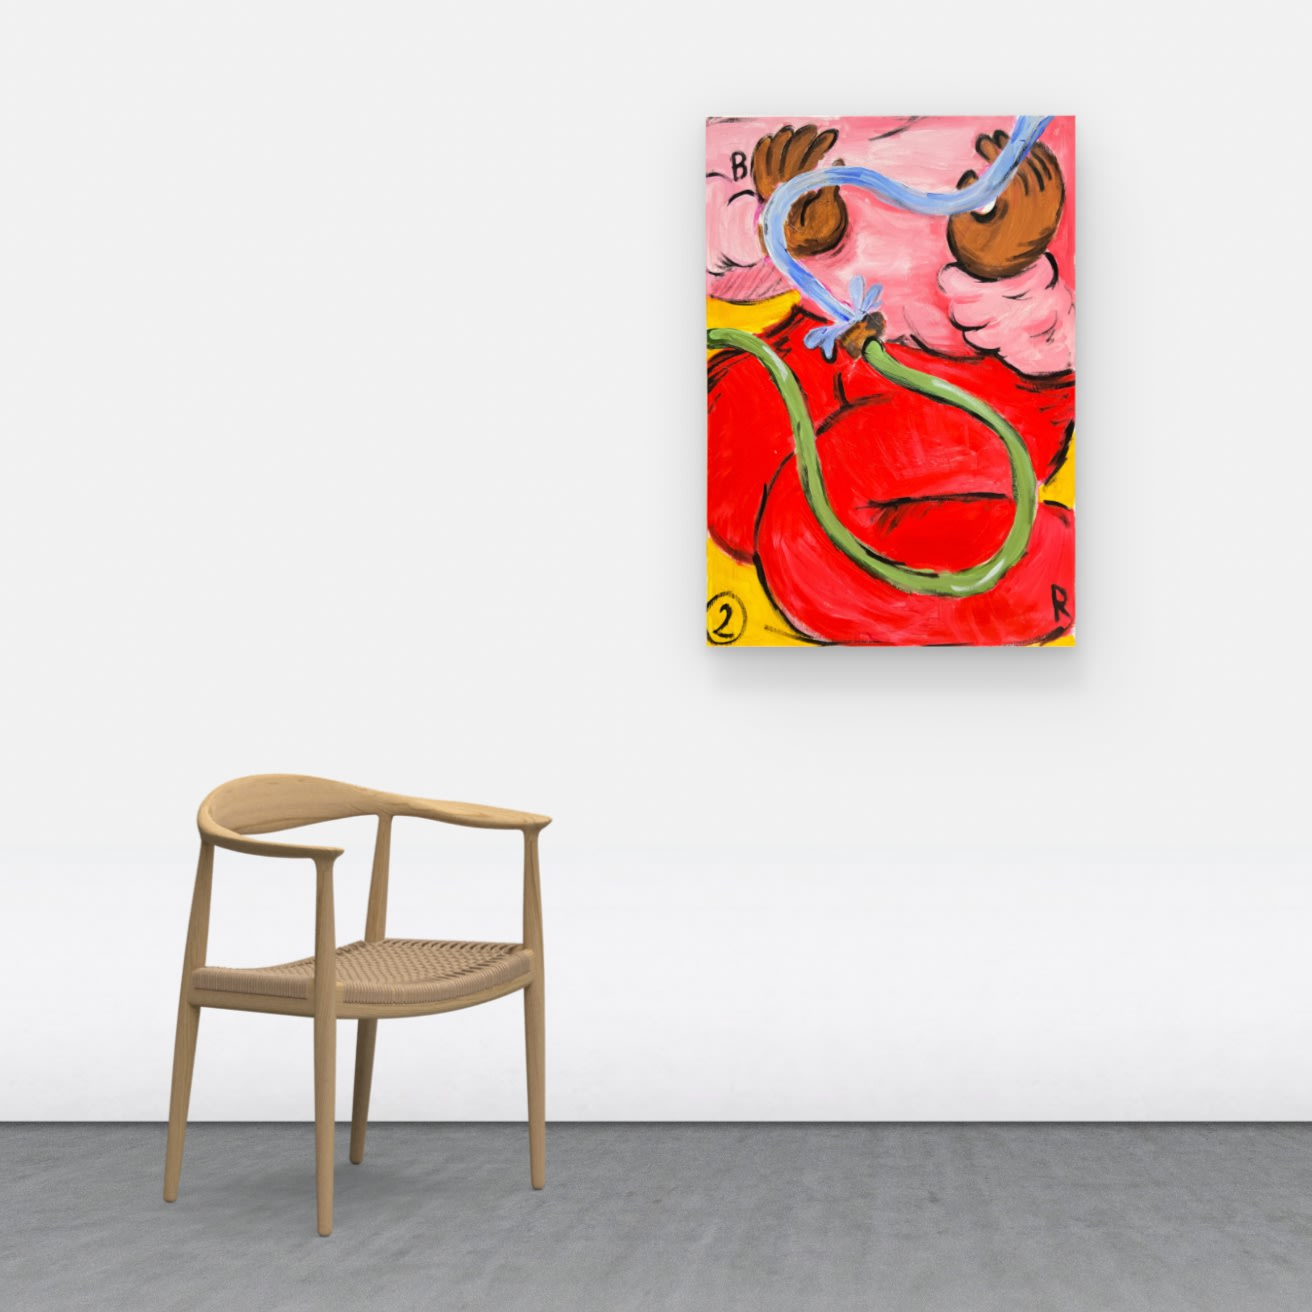 HOW WILL THE WORK LOOK LIKE IN MY HOME? If you click the view on a wall button, you will be able to create a mock-up of how the work will look in a space. Each image is scaled according to the work's size, allowing for perspective on how it will look once installed.